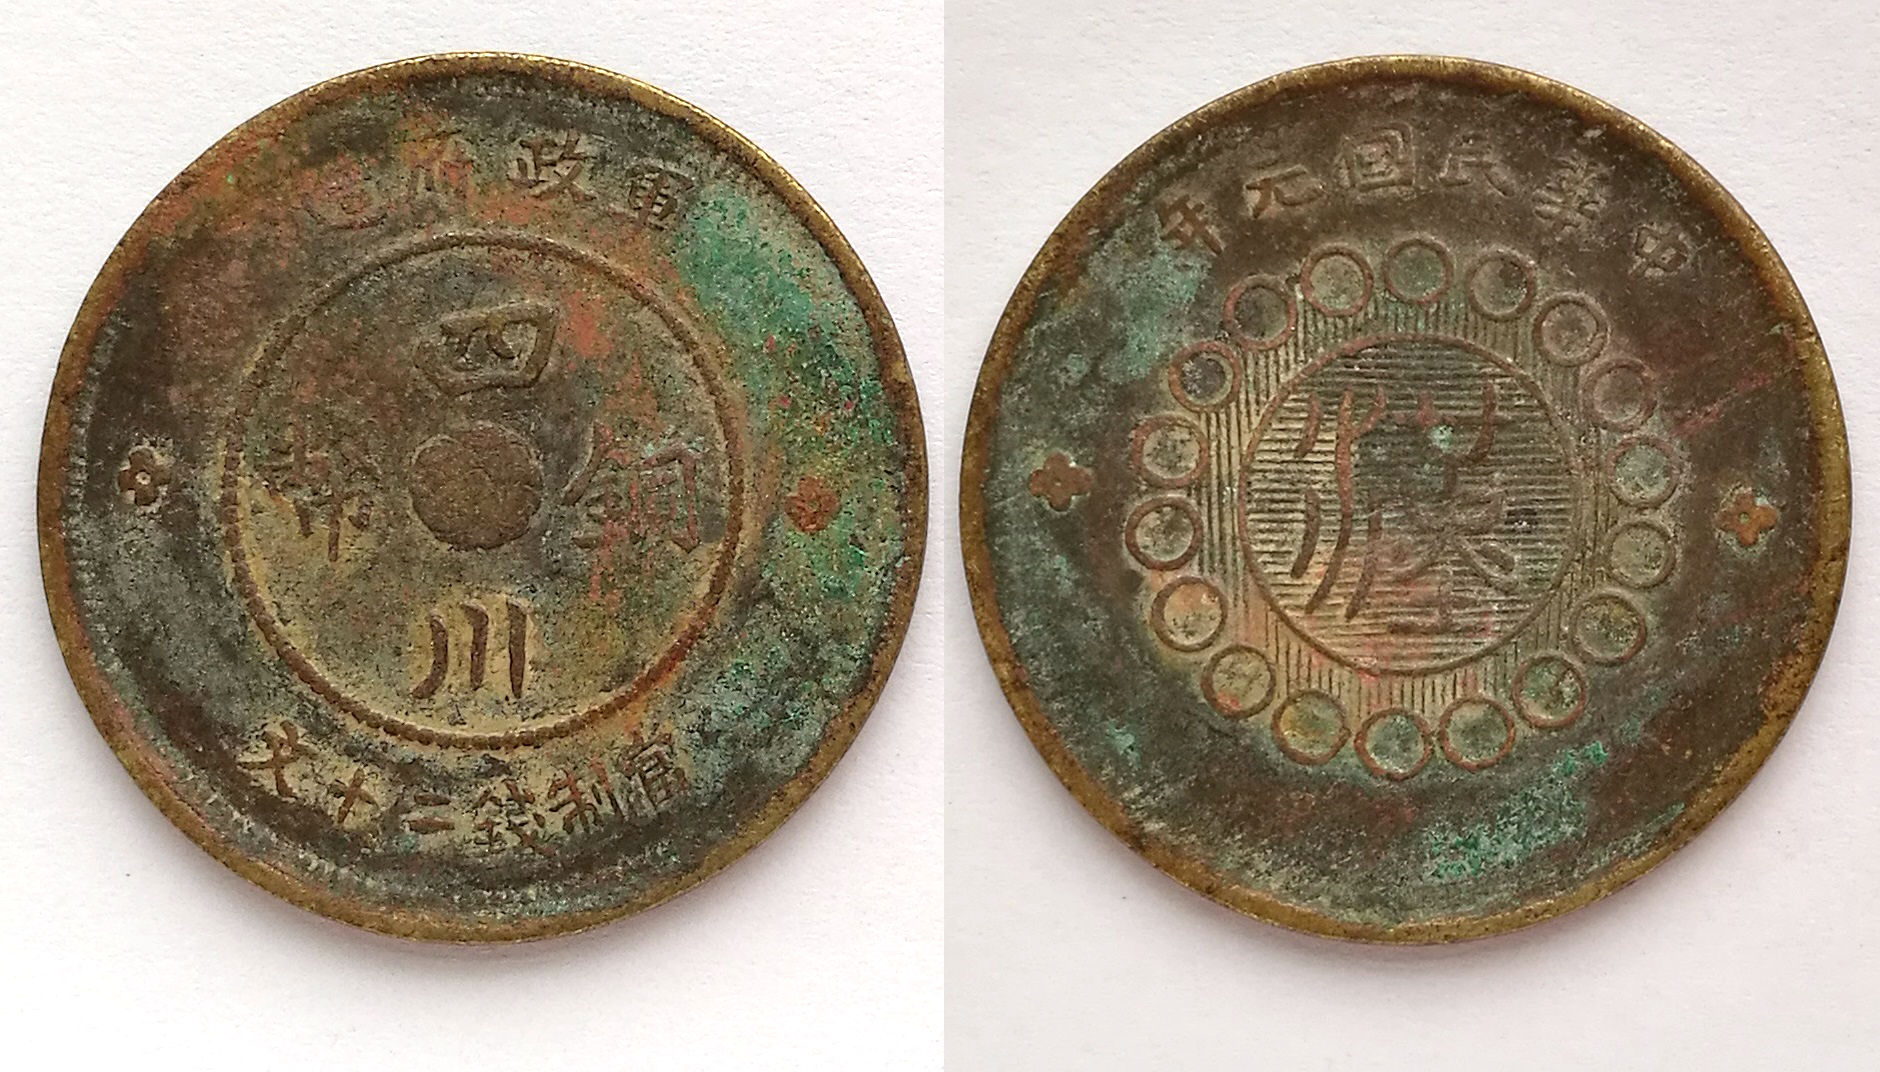 K5220, Szechuan (Si-Chuan) Province 20-Cash Coin, 1911 China